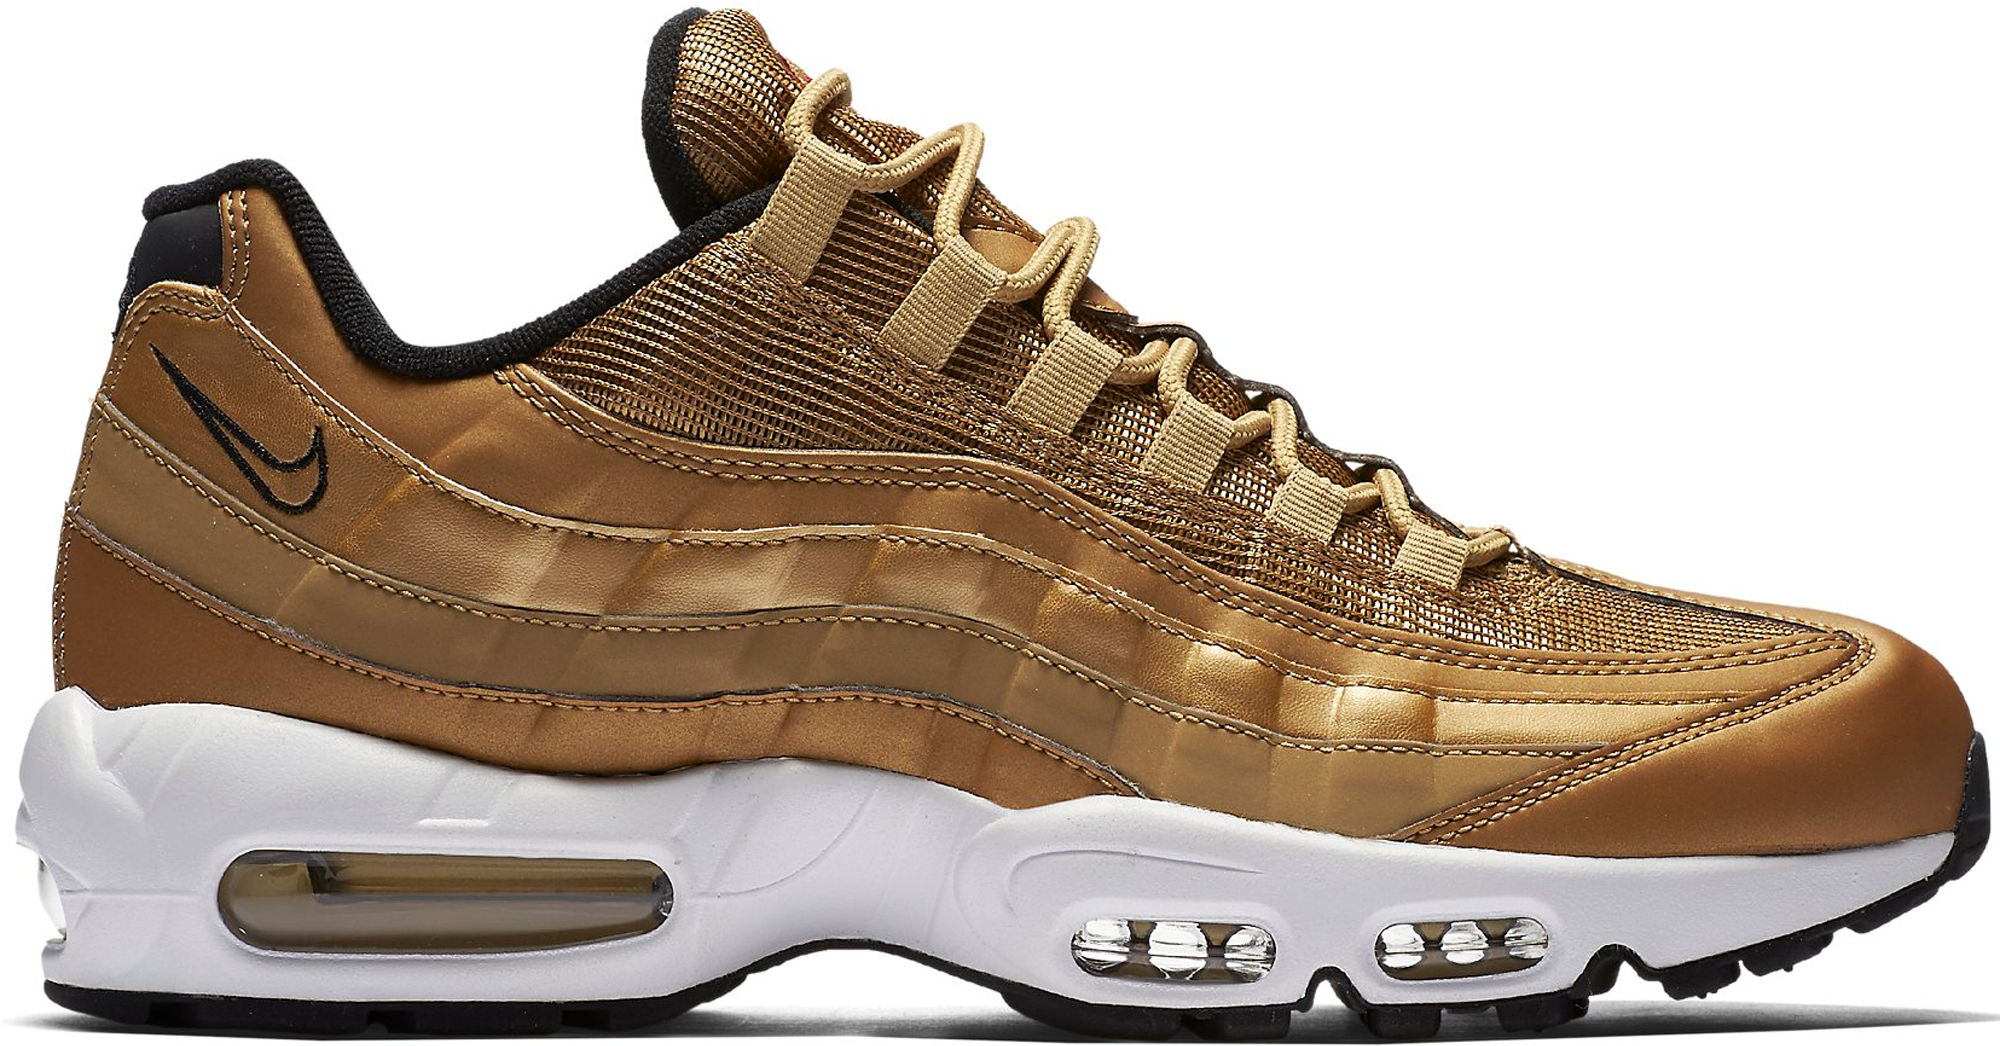 Nike Air Max 95 Metallic Gold - 918359-700